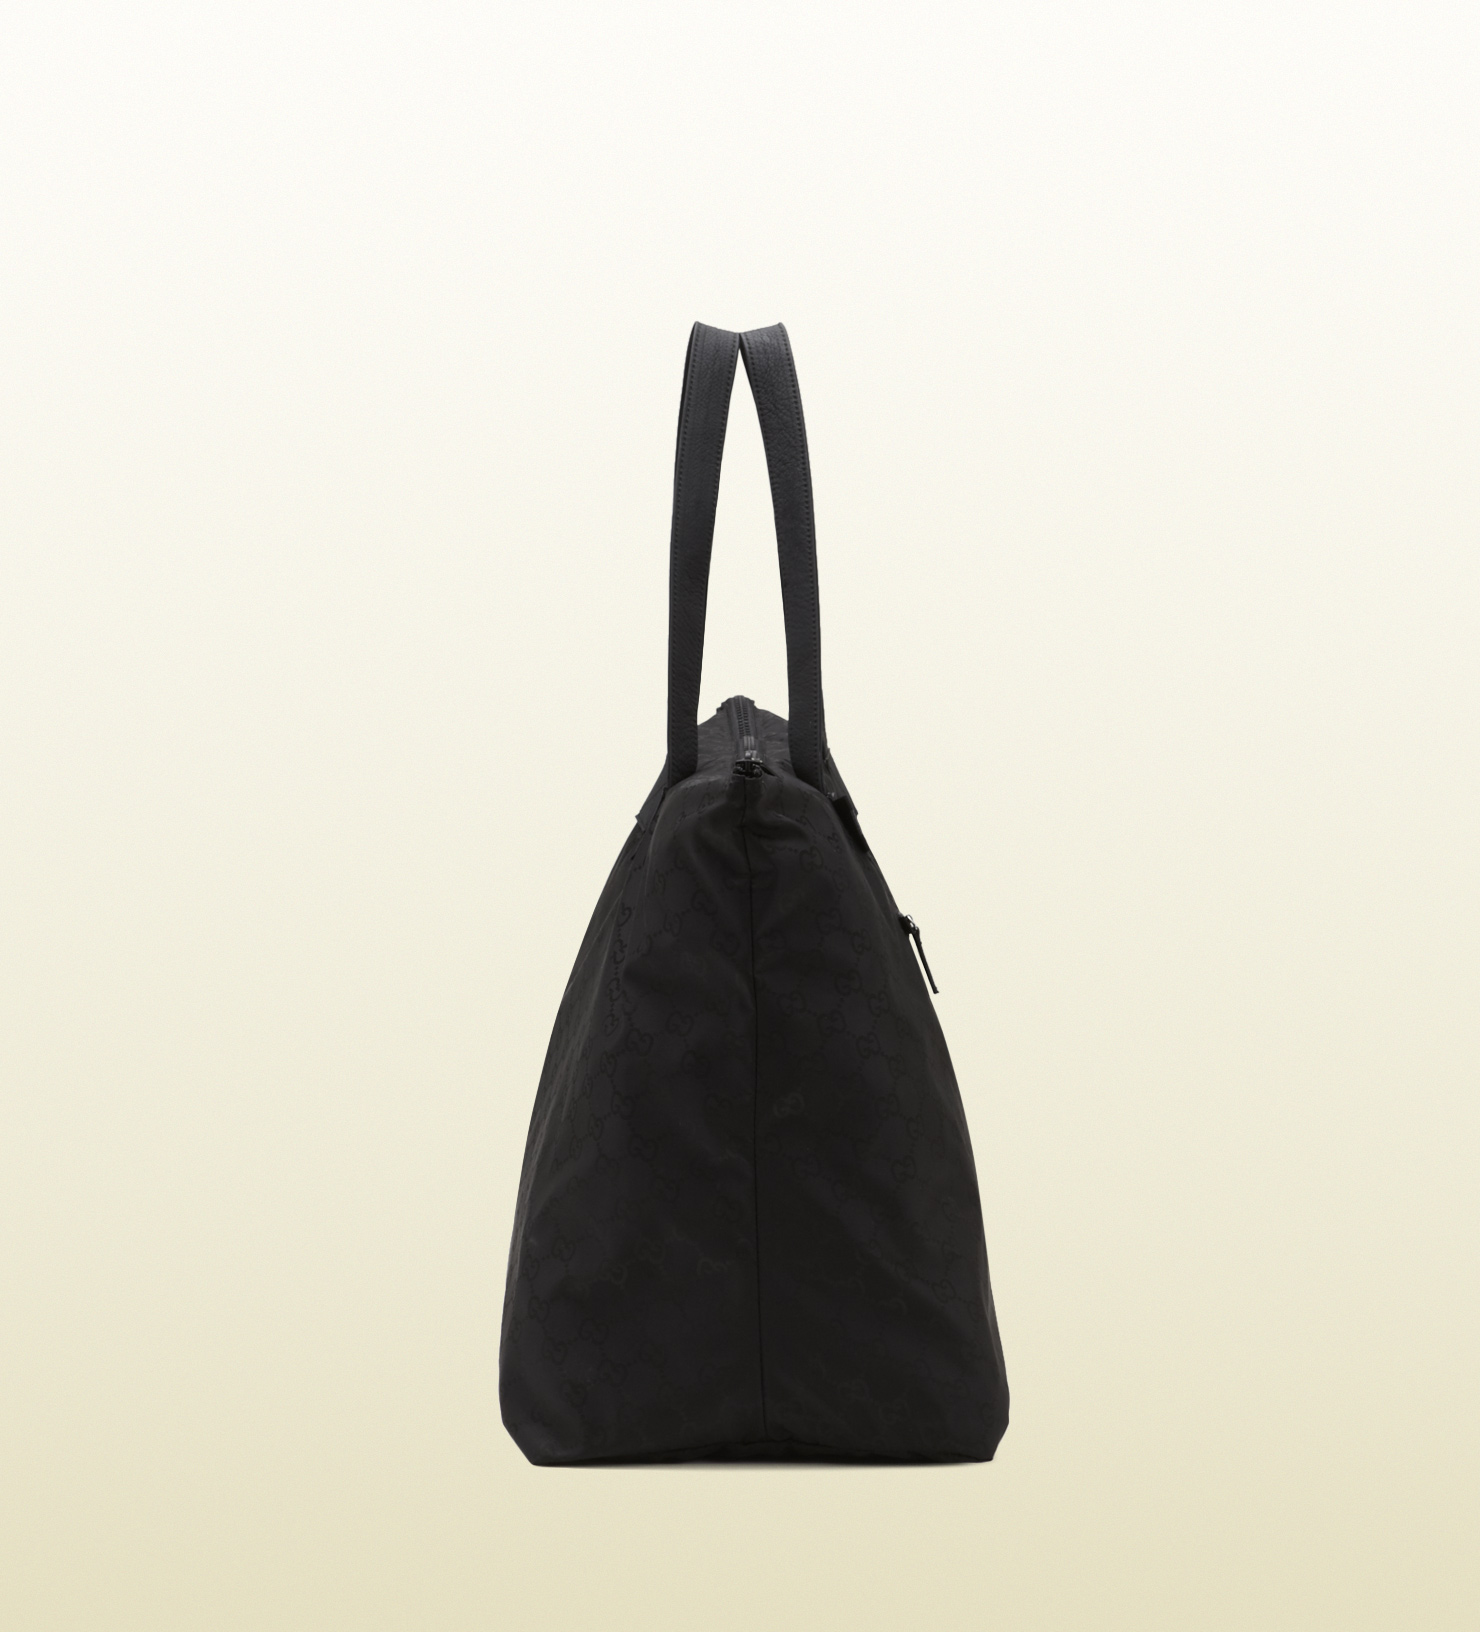 d3c77a4b1133 Lyst - Gucci Black Gg Nylon Duffel Bag From Viaggio Collection in Black for  Men